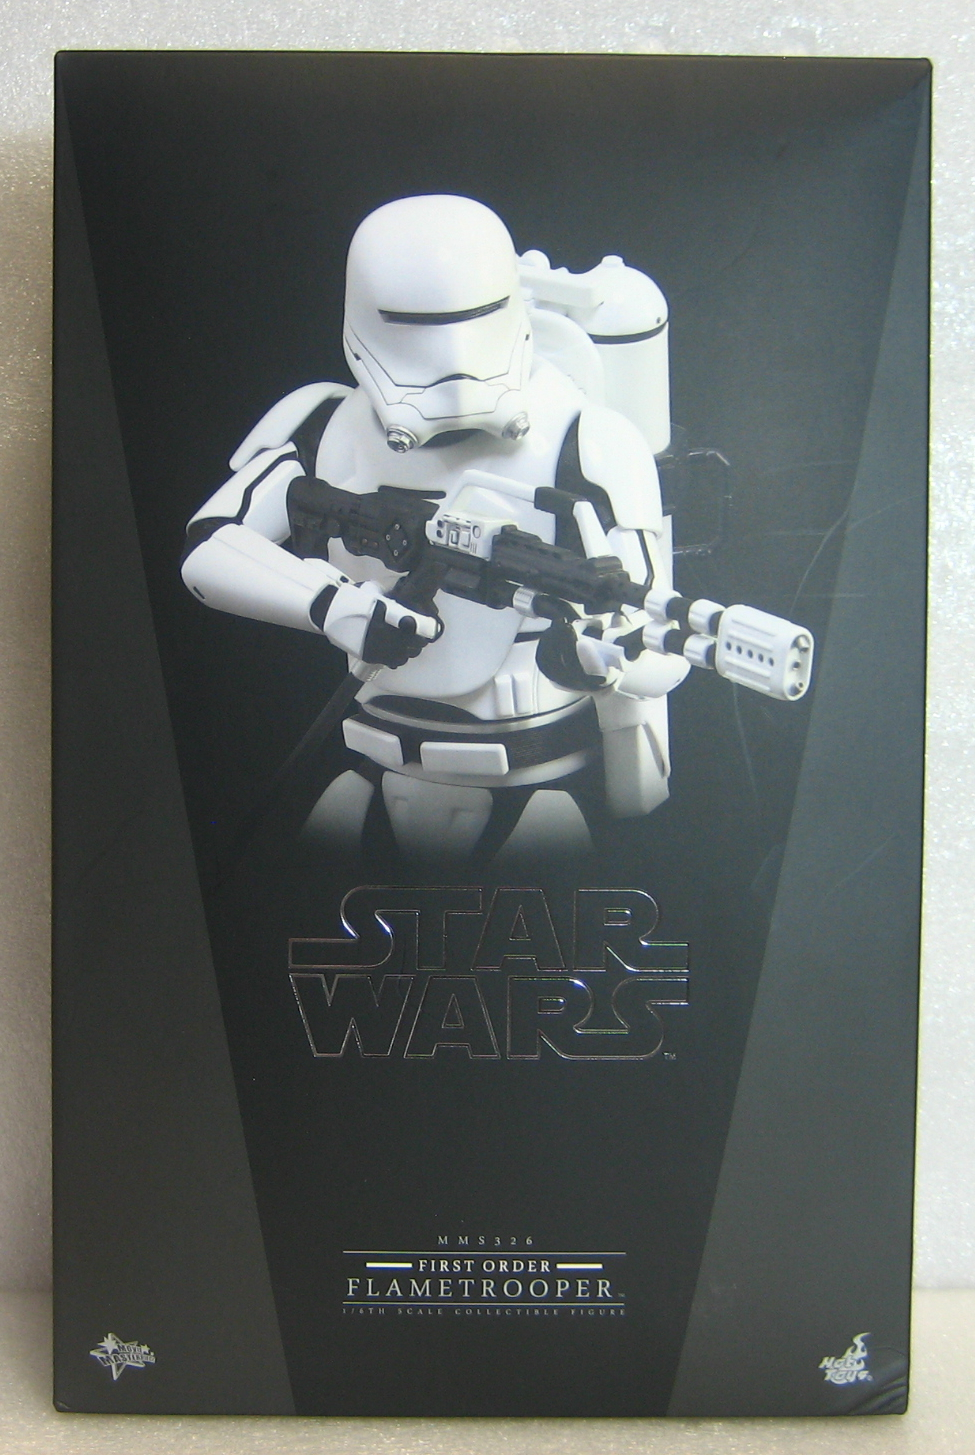 Hot Toys Star Wars First Order Flametrooper 1:6 Scale Figure